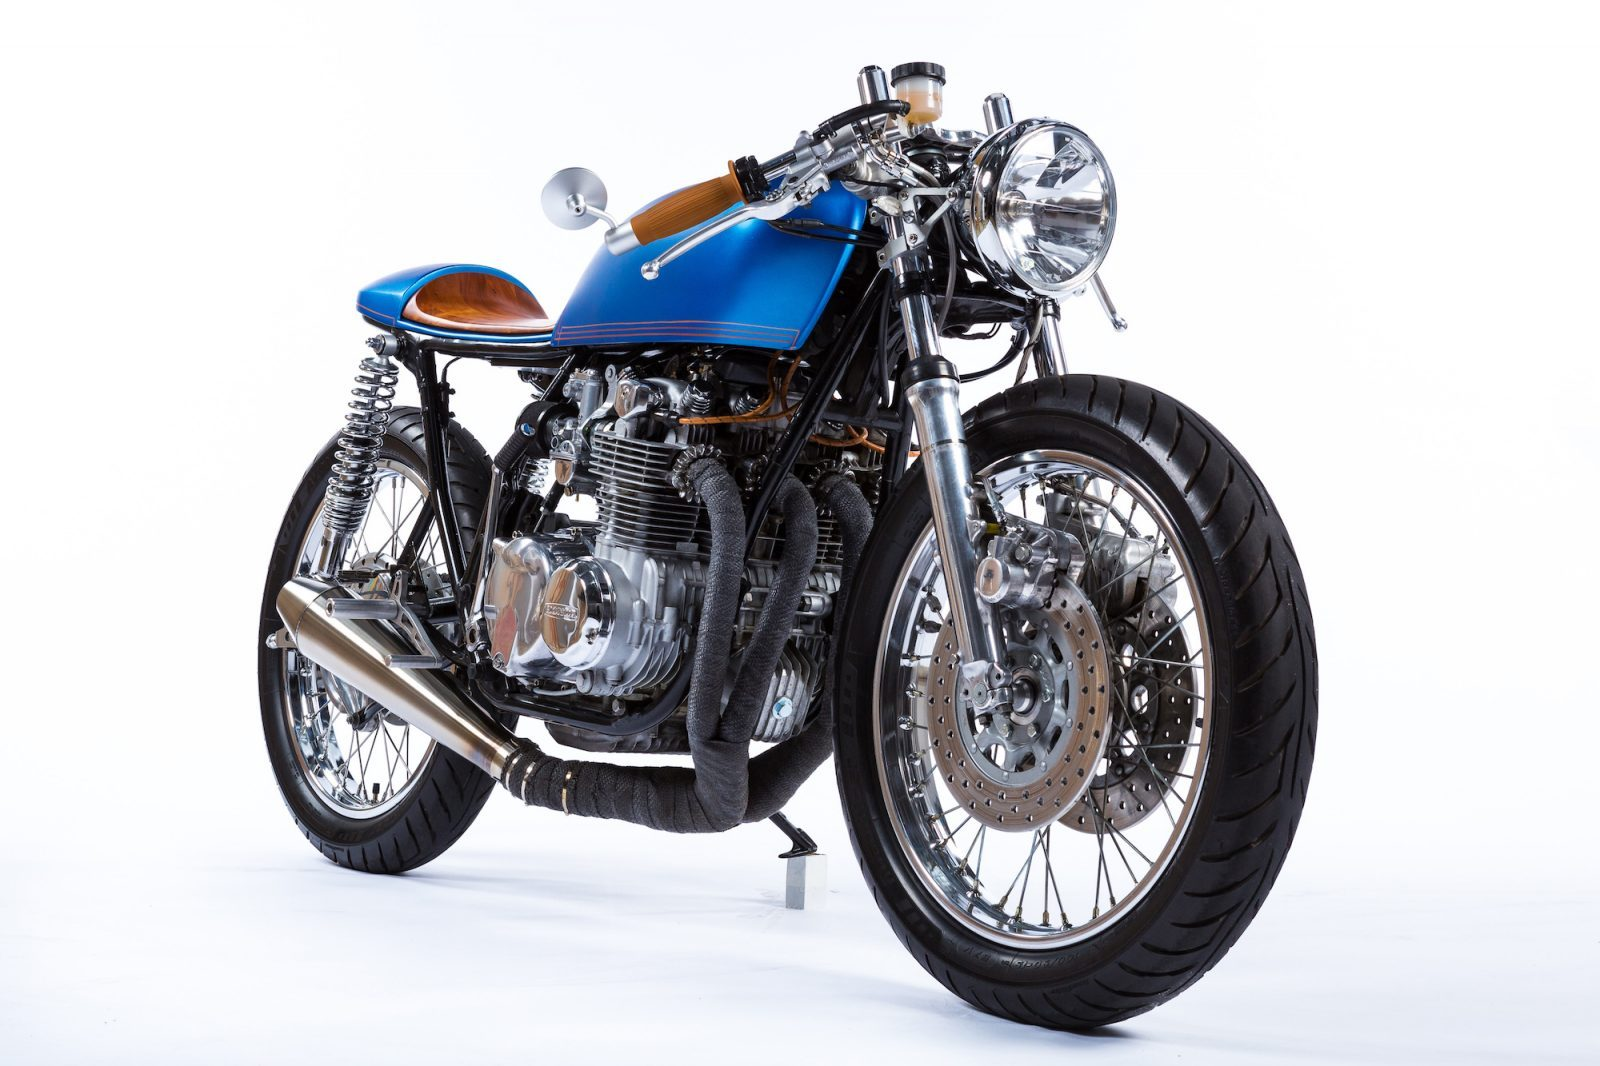 A Brief History Of The Honda CB550